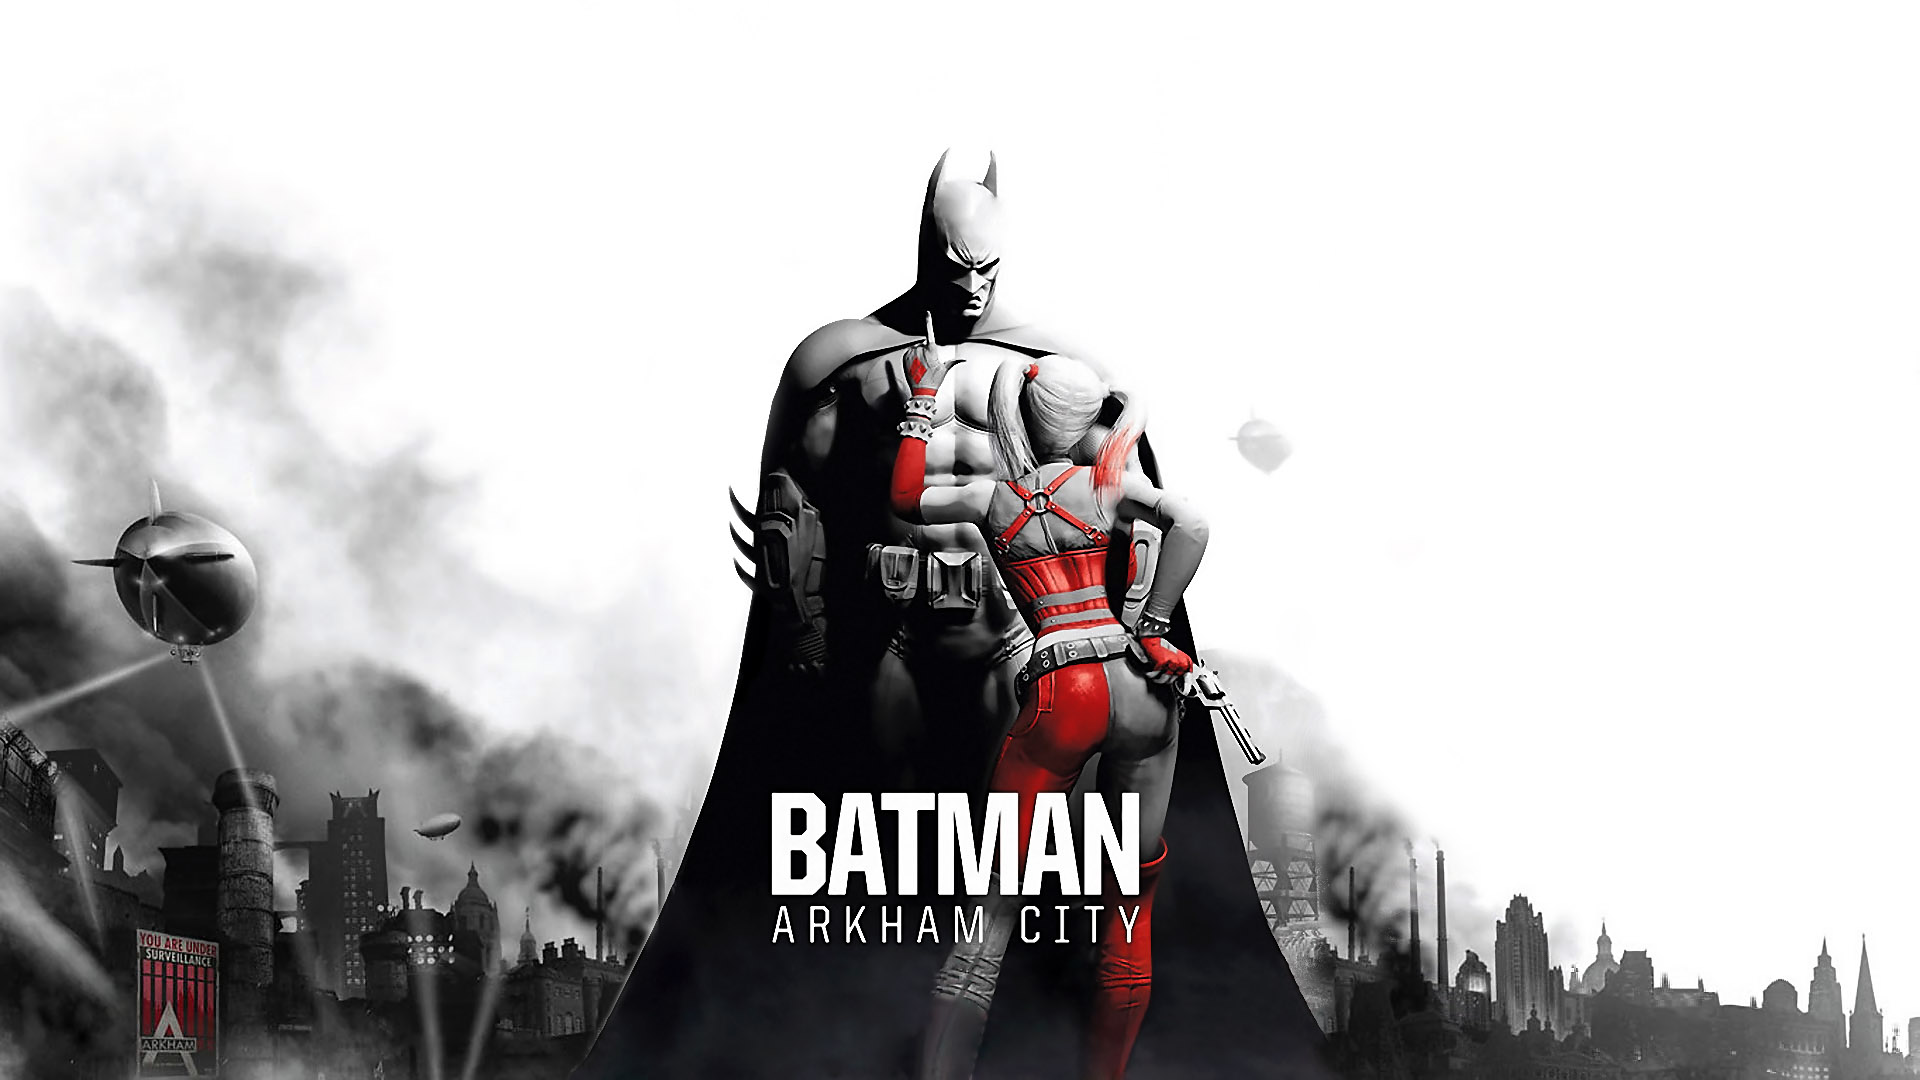 Batman Arkham City Batman Harleyjpg 1920x1080